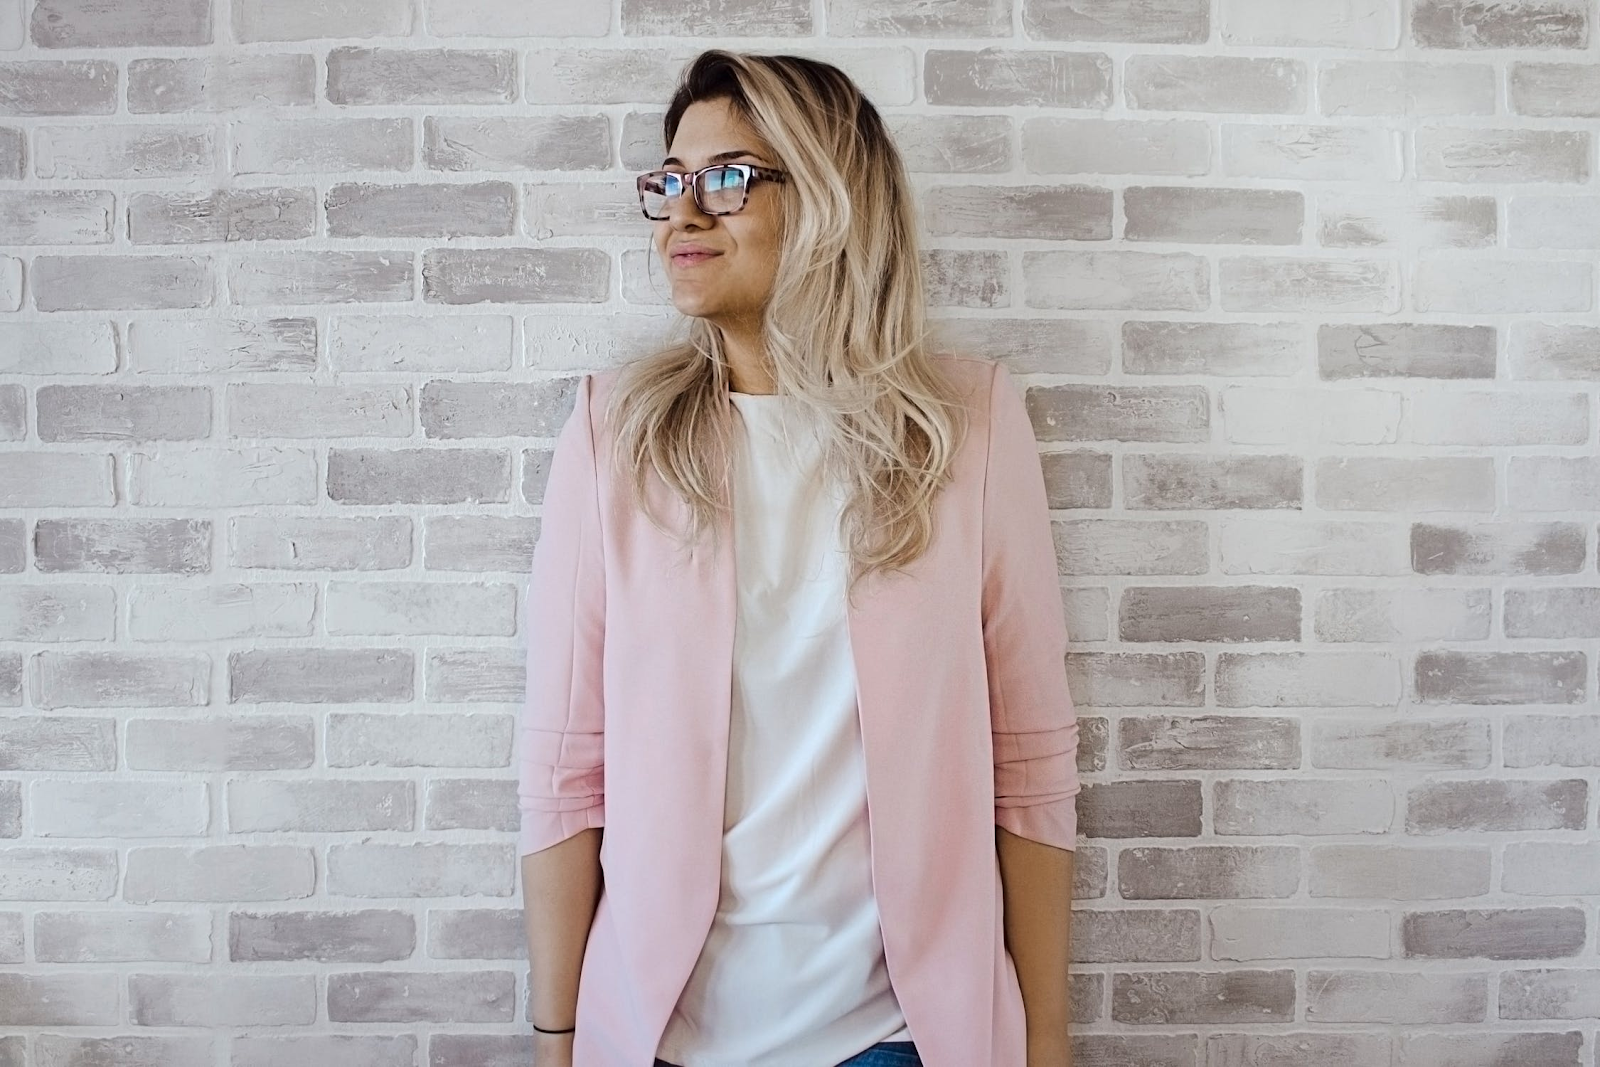 woman with pink jacket leaning on wall